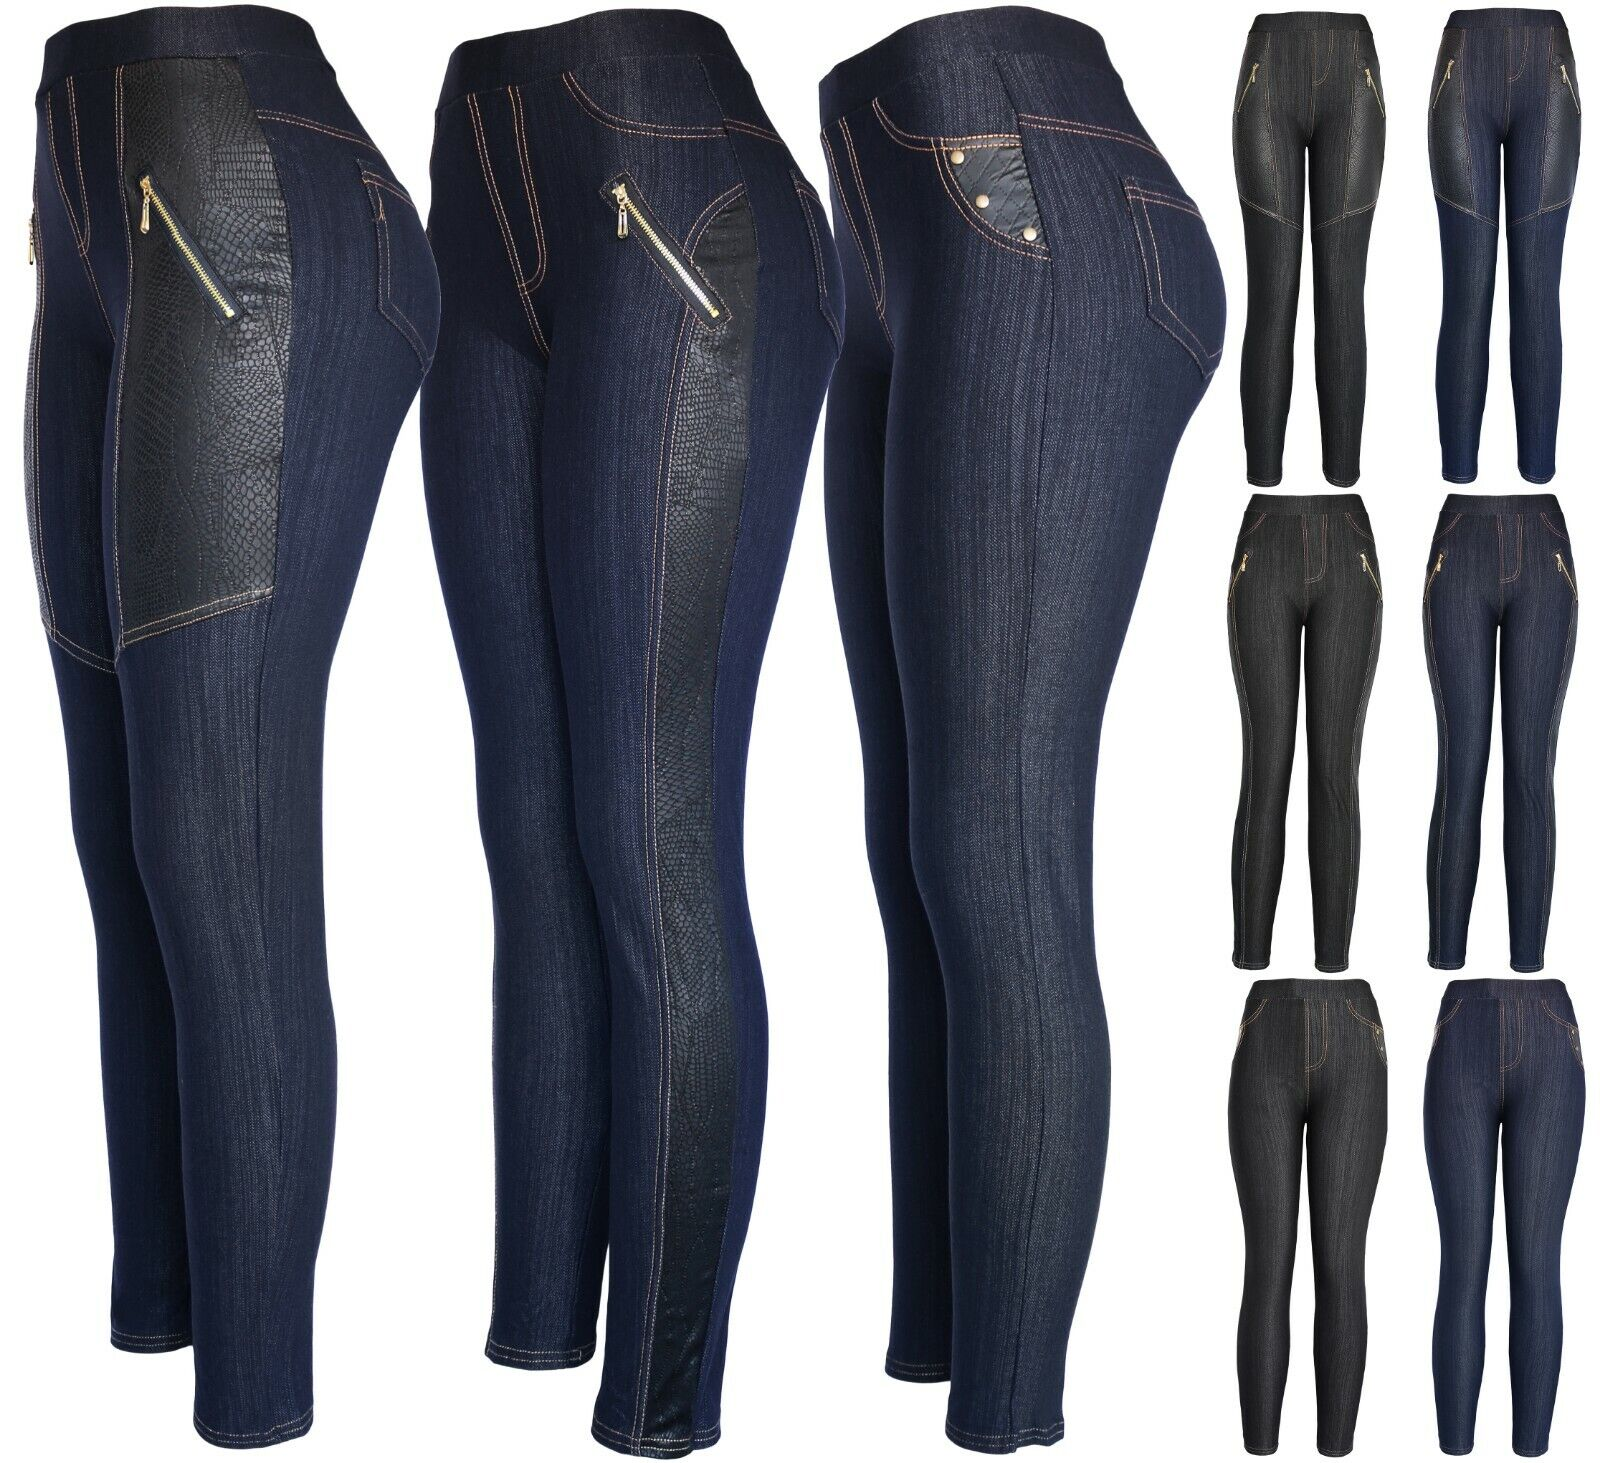 Womens Classic Denim Look with Faux Insert Leggings Pants Clothing, Shoes & Accessories